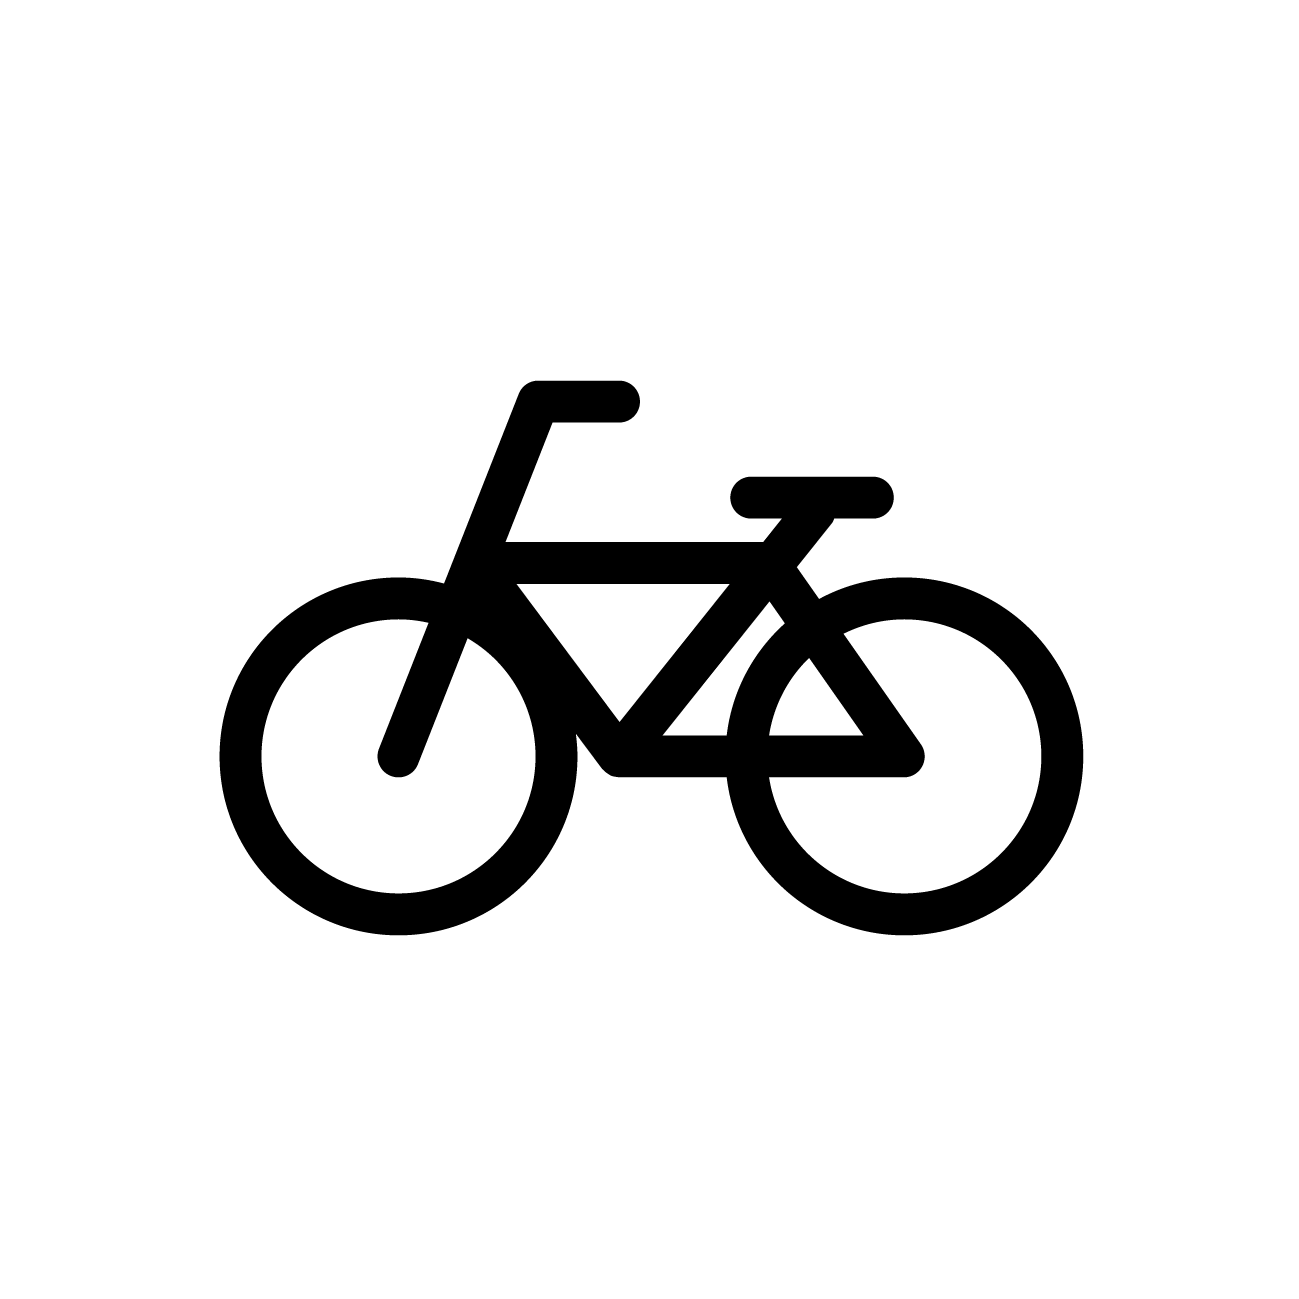 Bicycle-parking-space